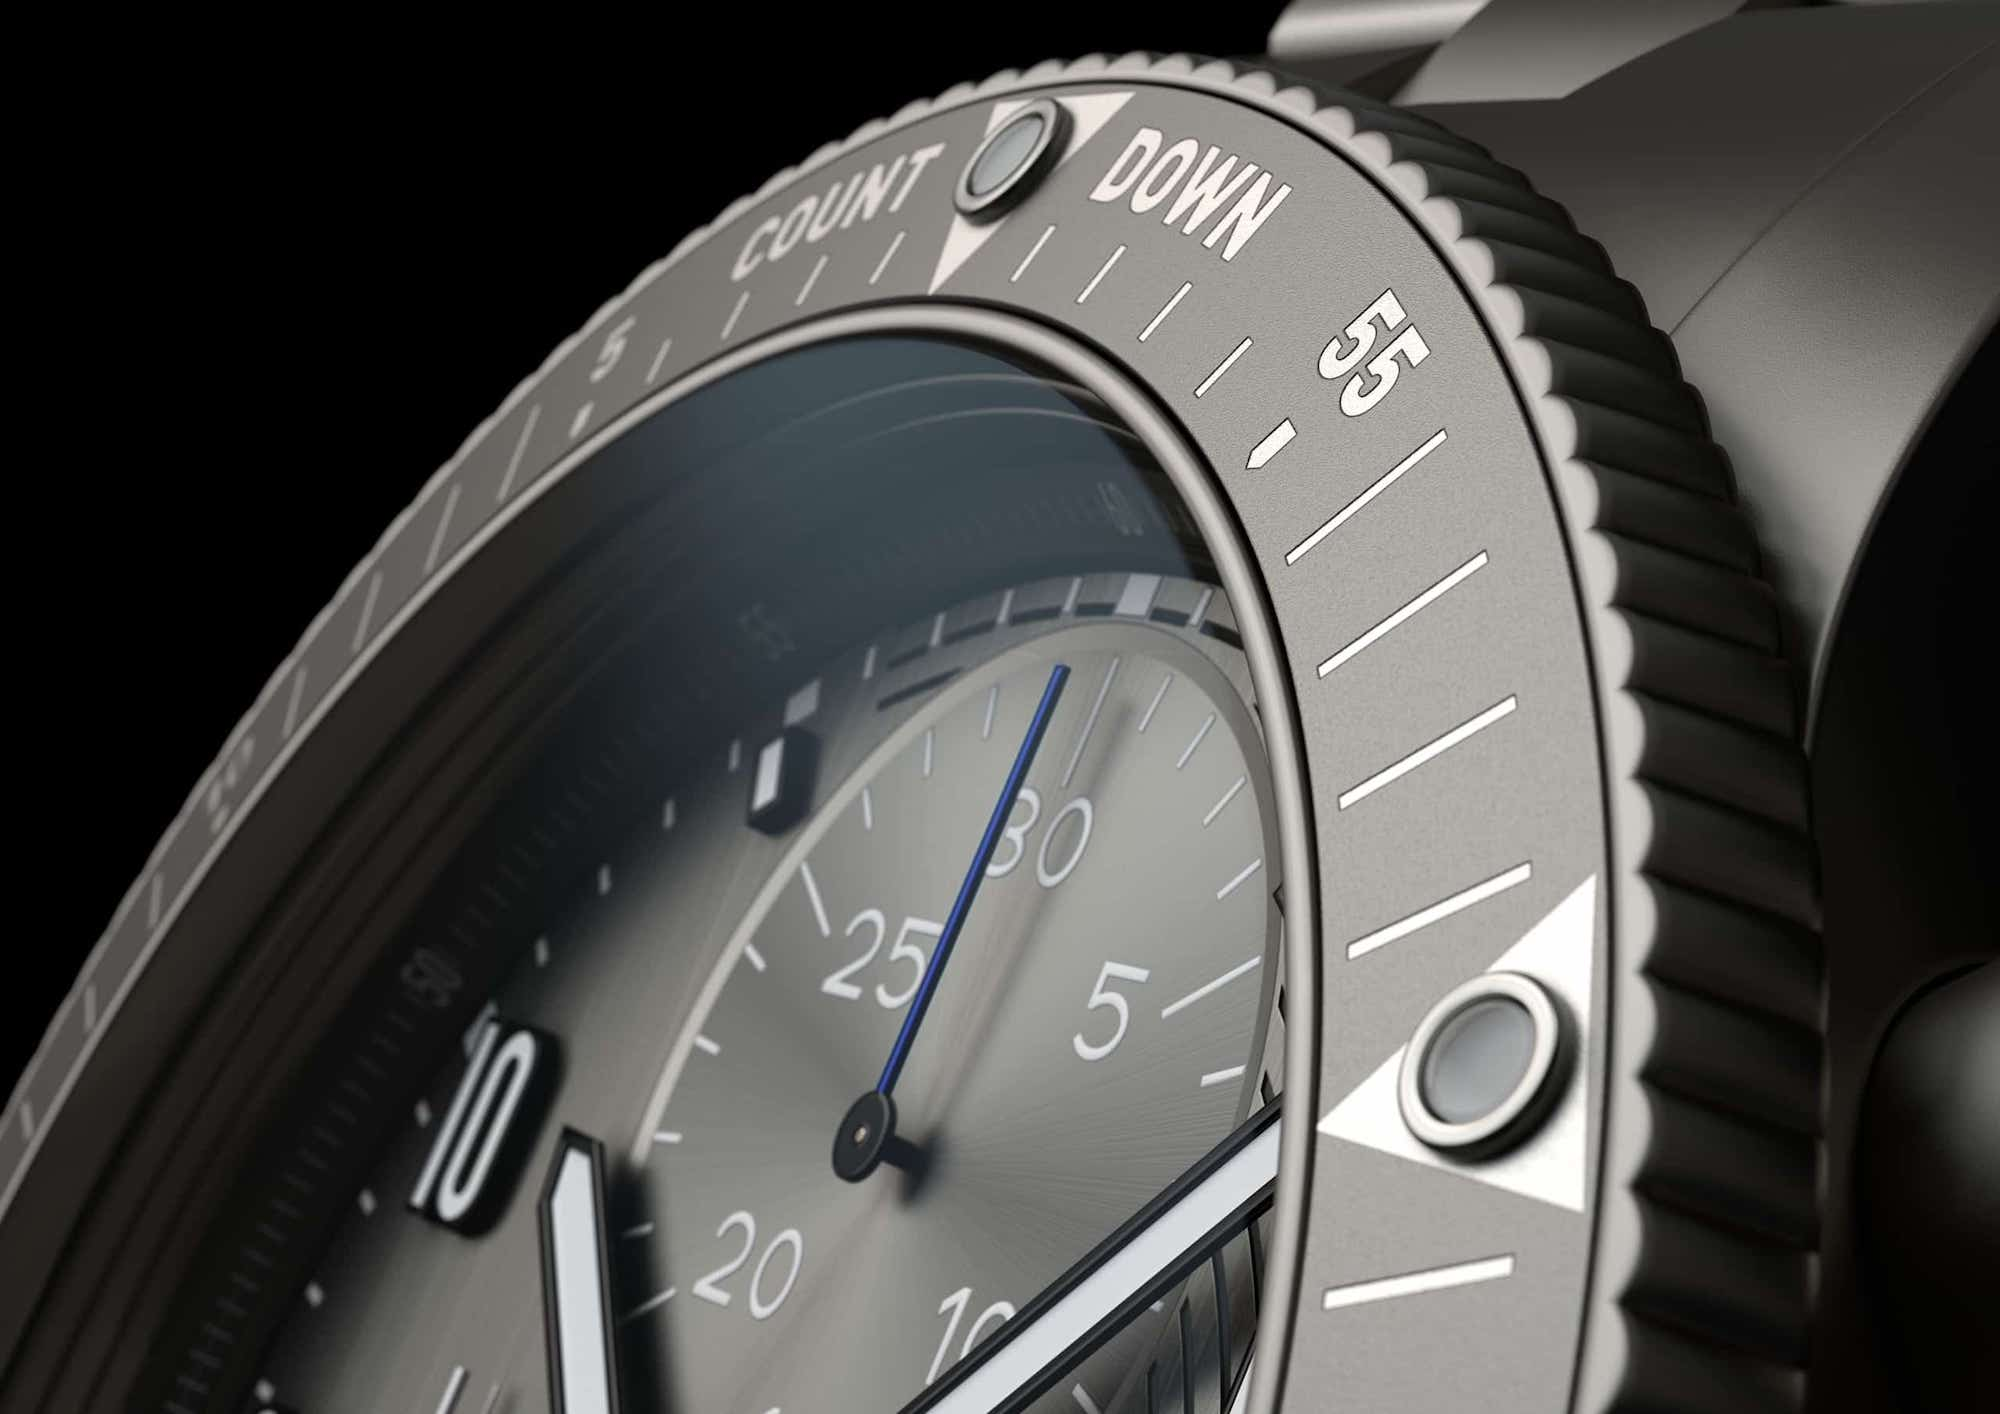 Fortis Official Cosmonauts Chronograph AMADEE-20 Detalle bisel